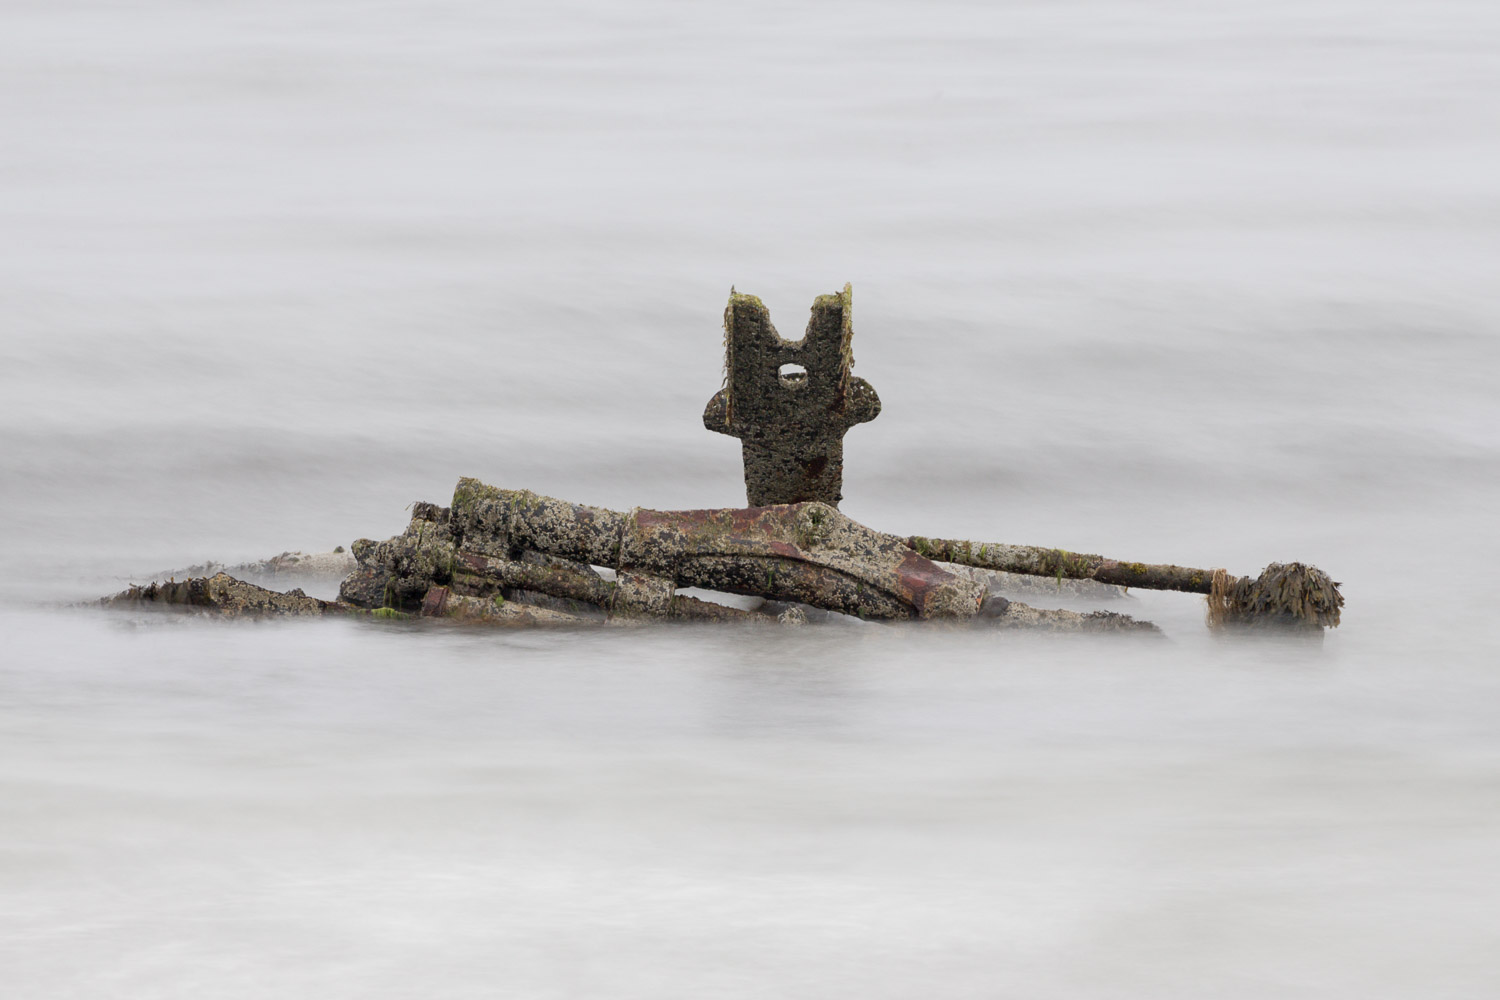 Wreckage at Bay of Lopness